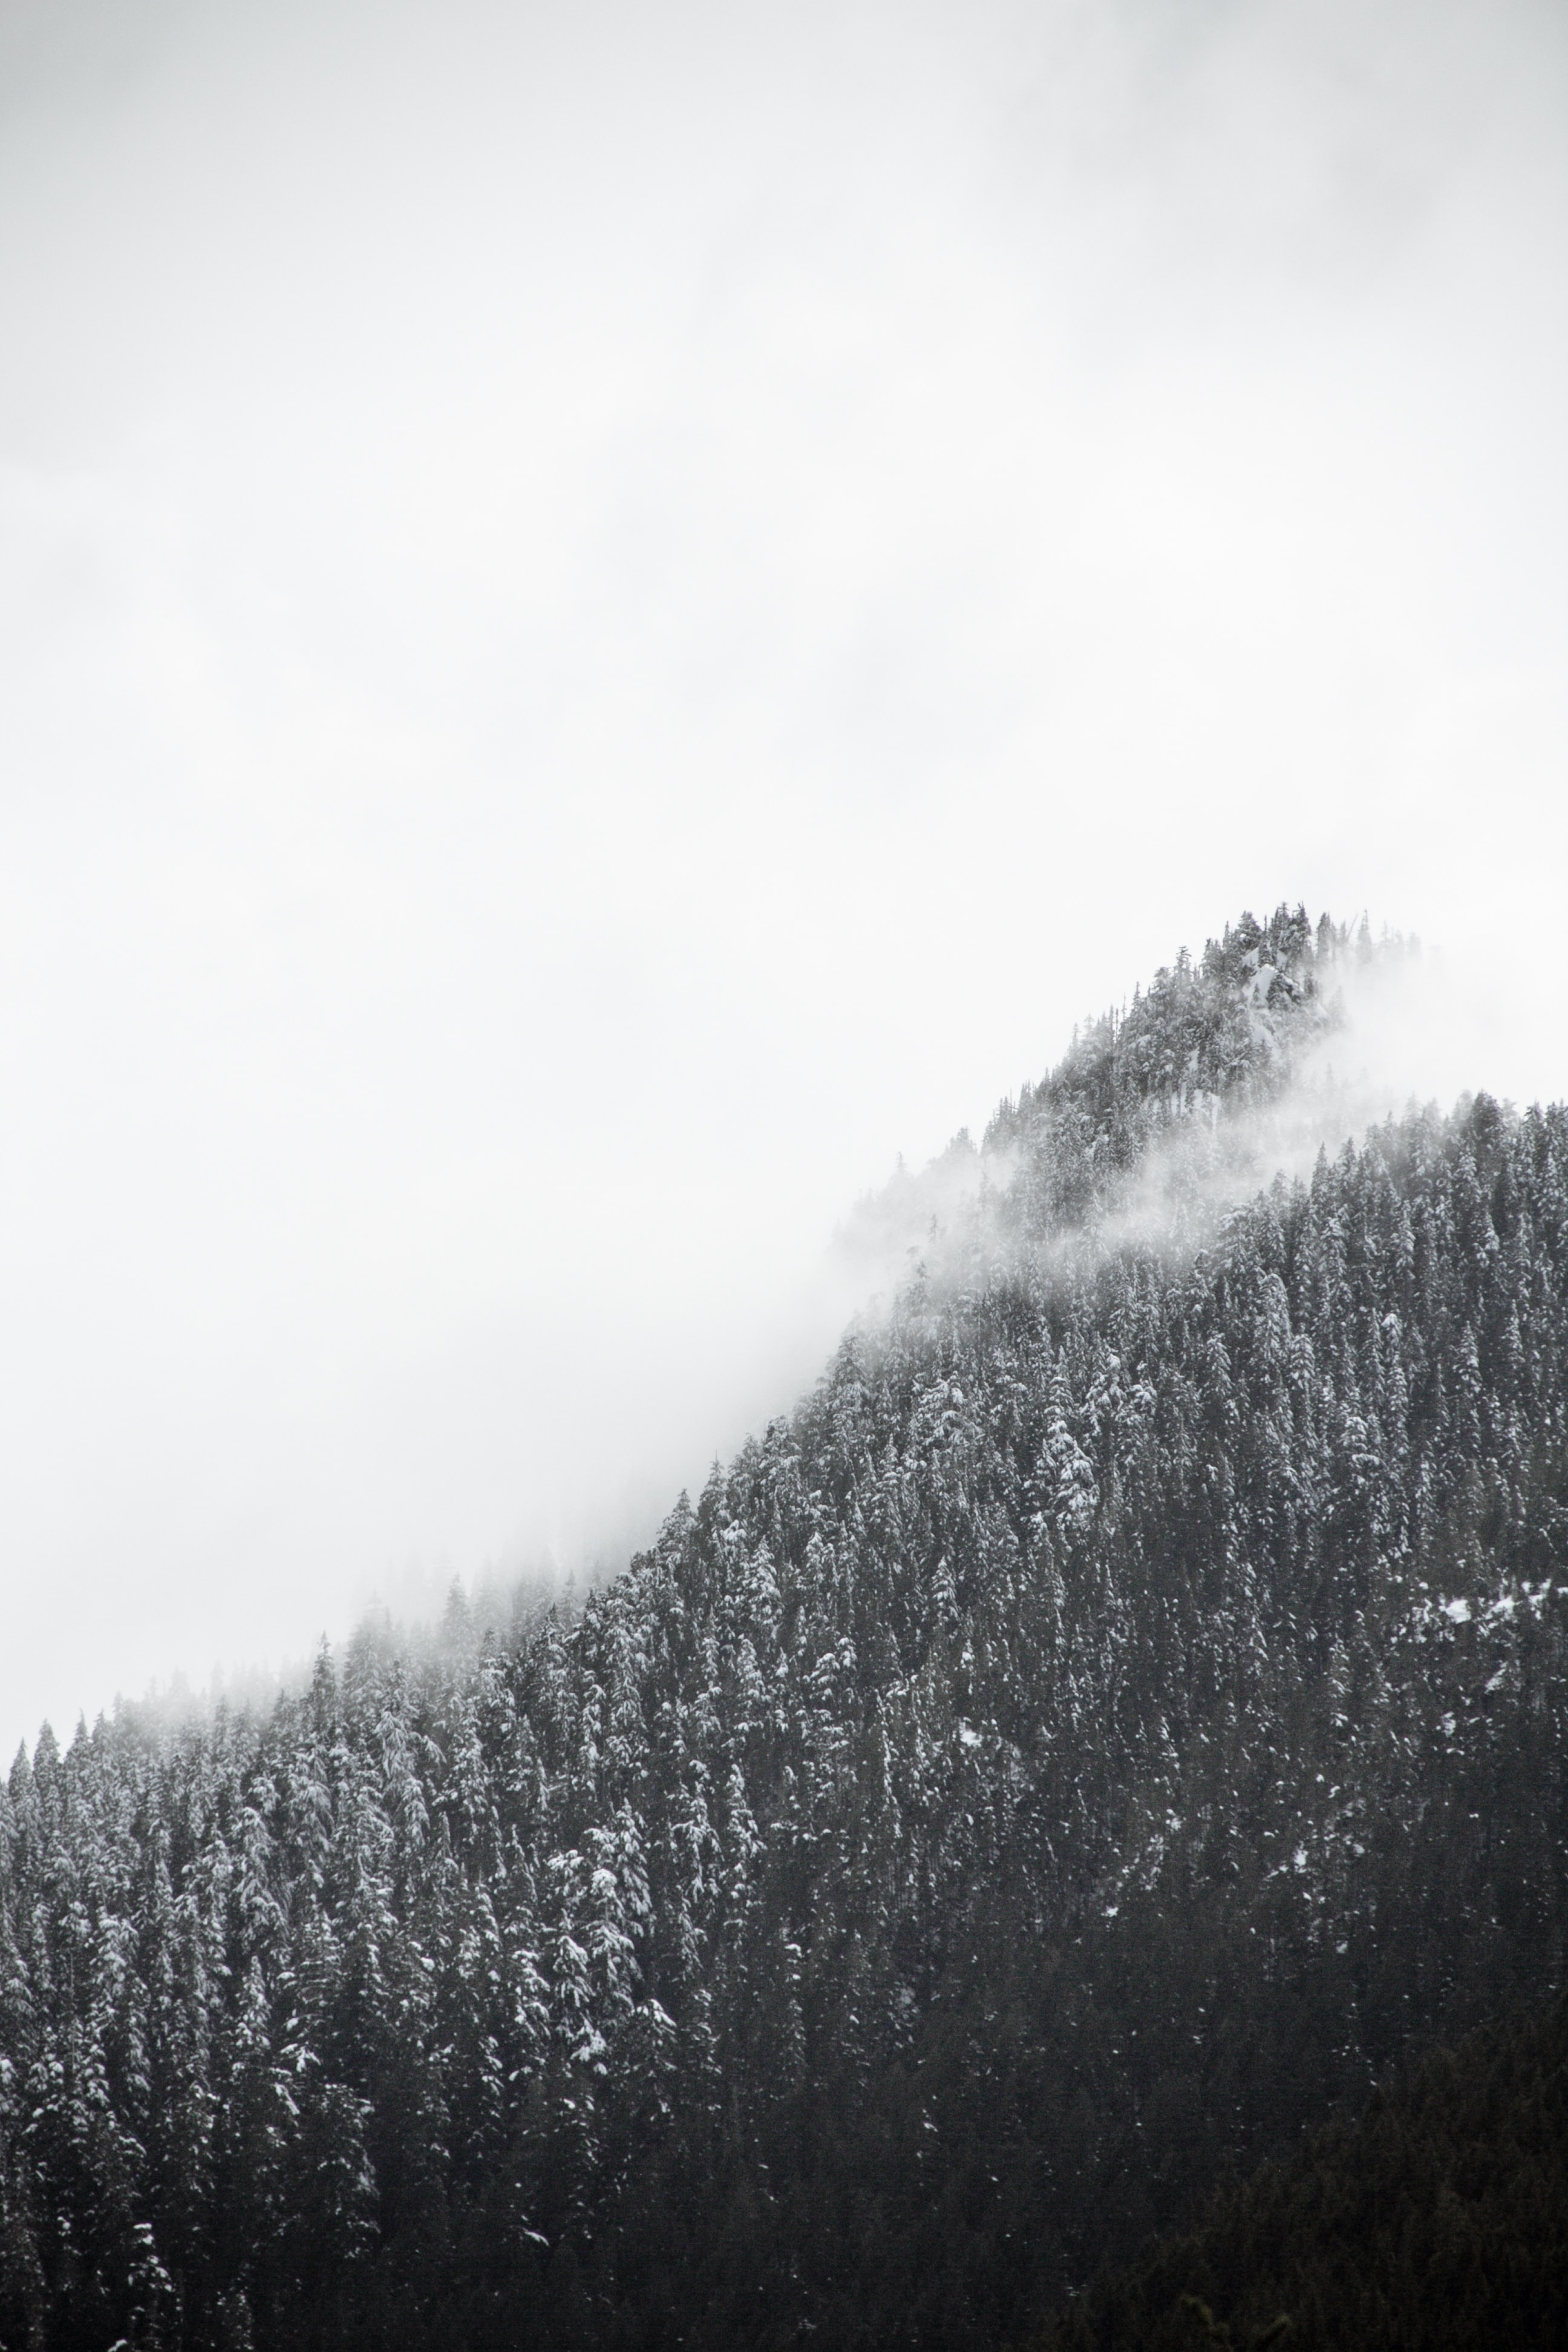 Snowy trees on a mist-wreathed mountain slope